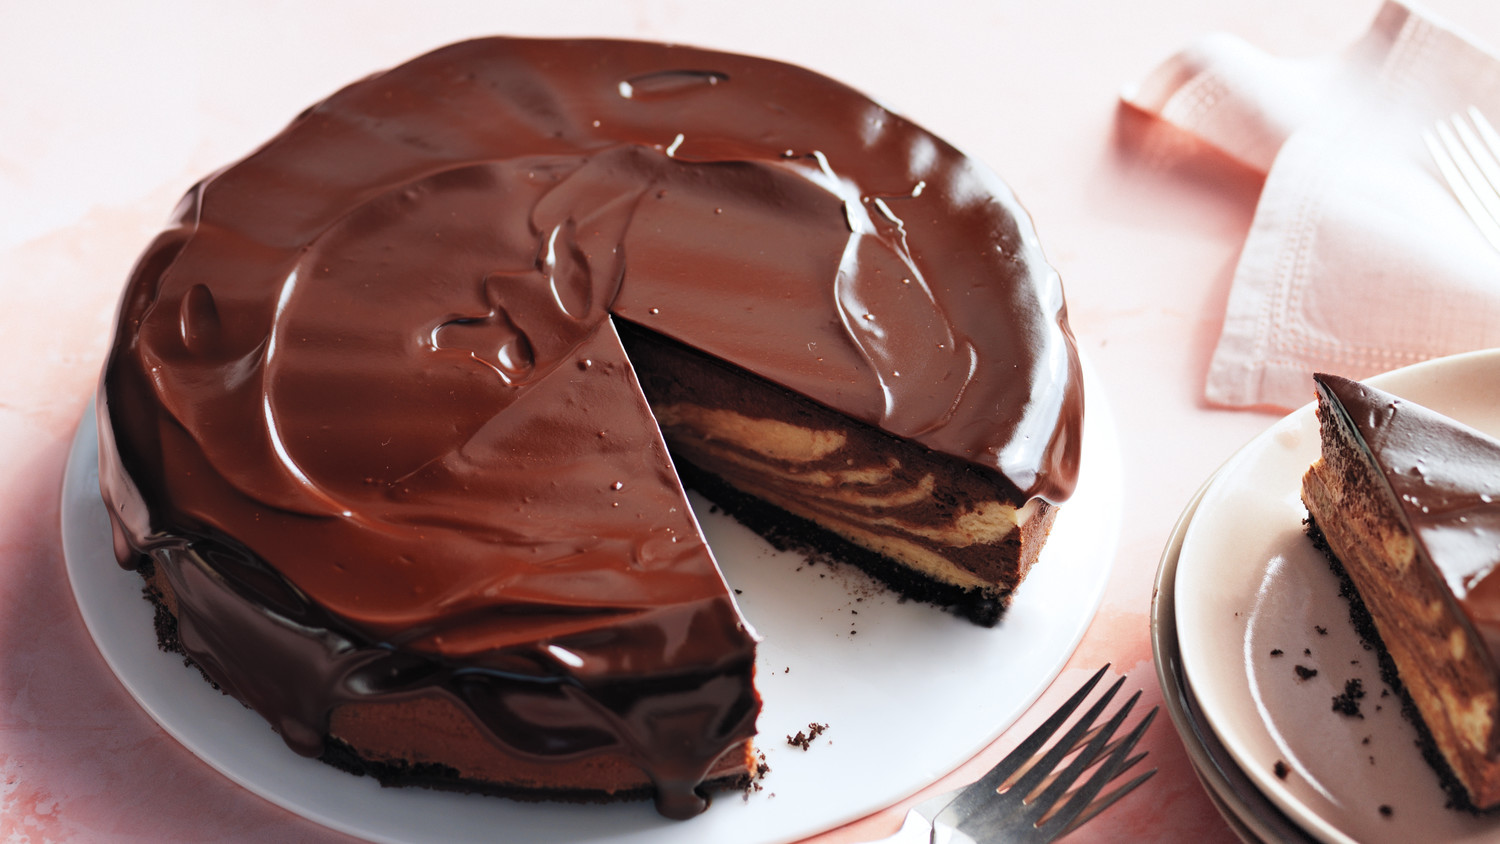 Chocolate Peanut Butter Cheesecake With Chocolate Glaze